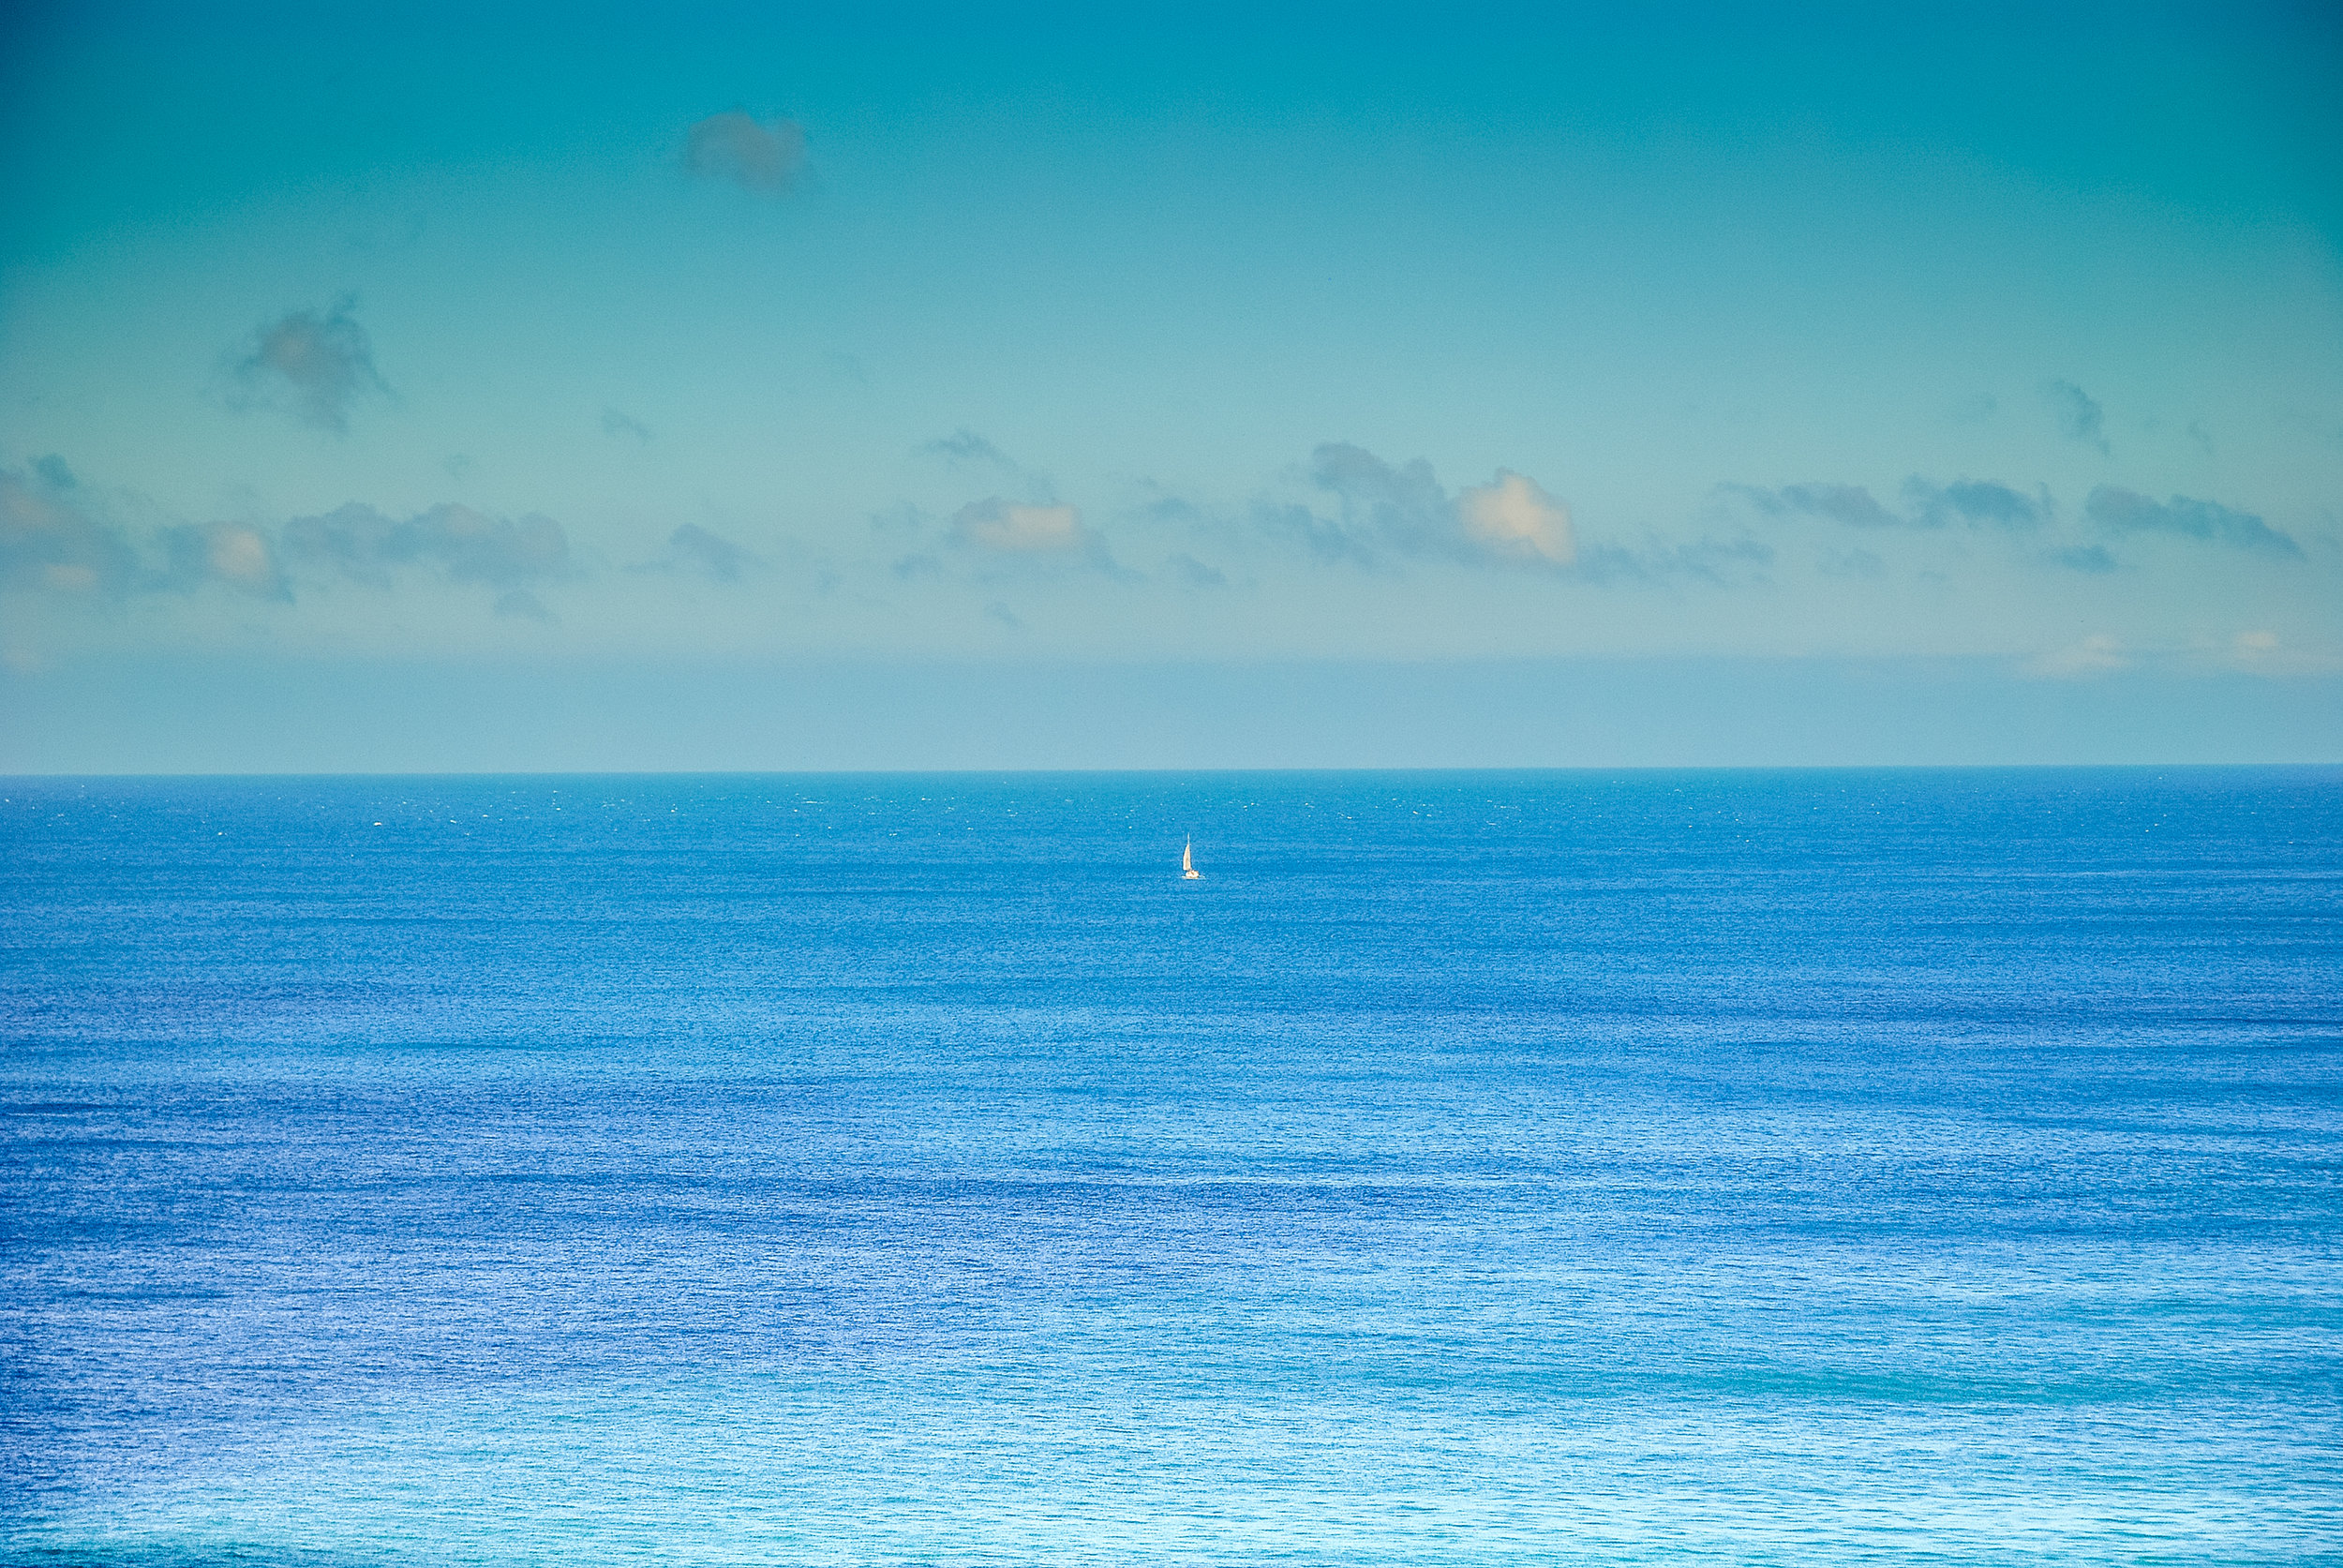 Travel - Portugal - Sailboat in the Distance 2.jpg